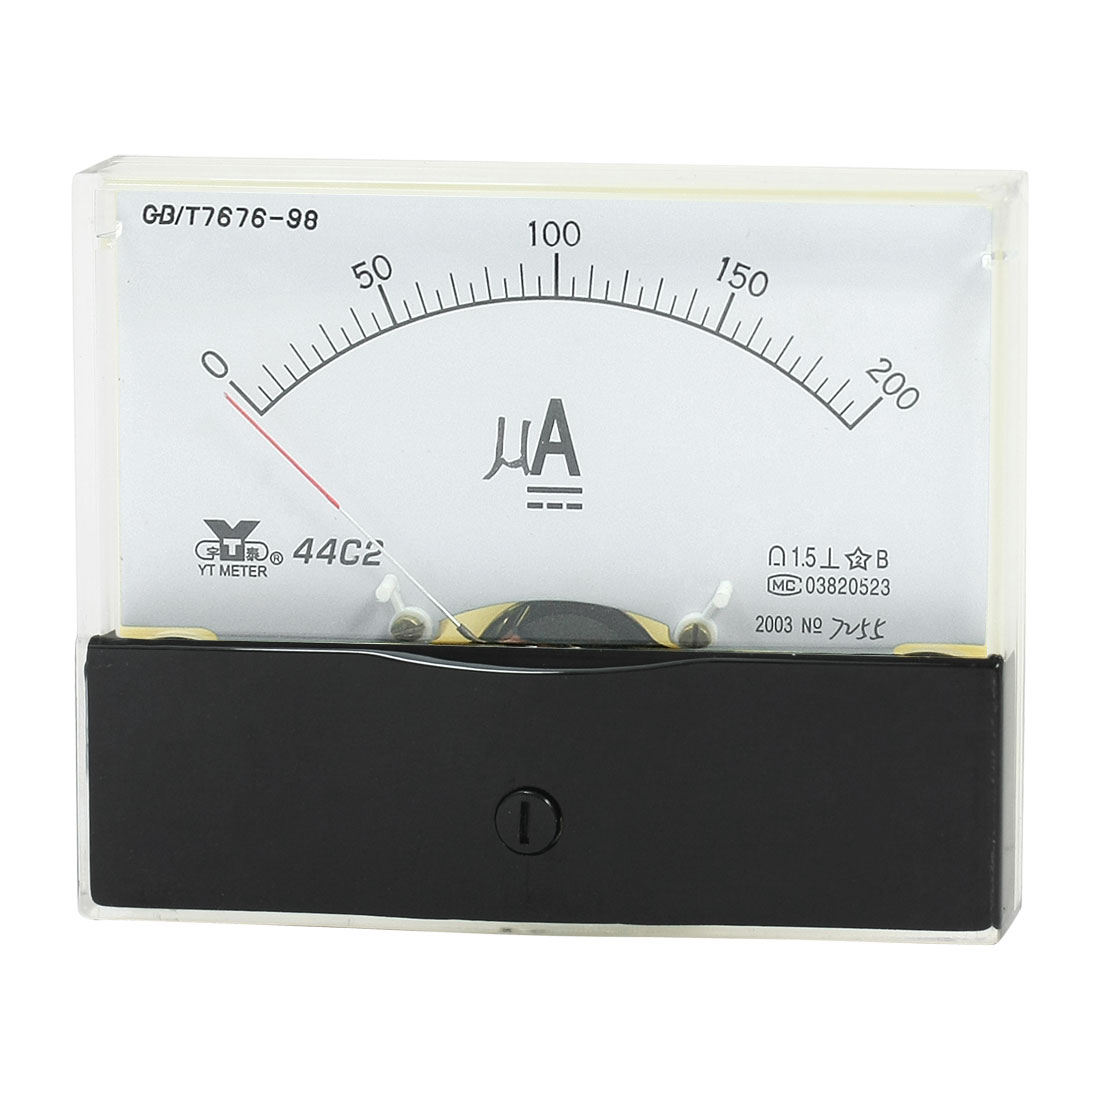 Rectangle Measurement Tool Analog Panel Ammeter Gauge DC 0 - 200uA Measuring Range 44C2